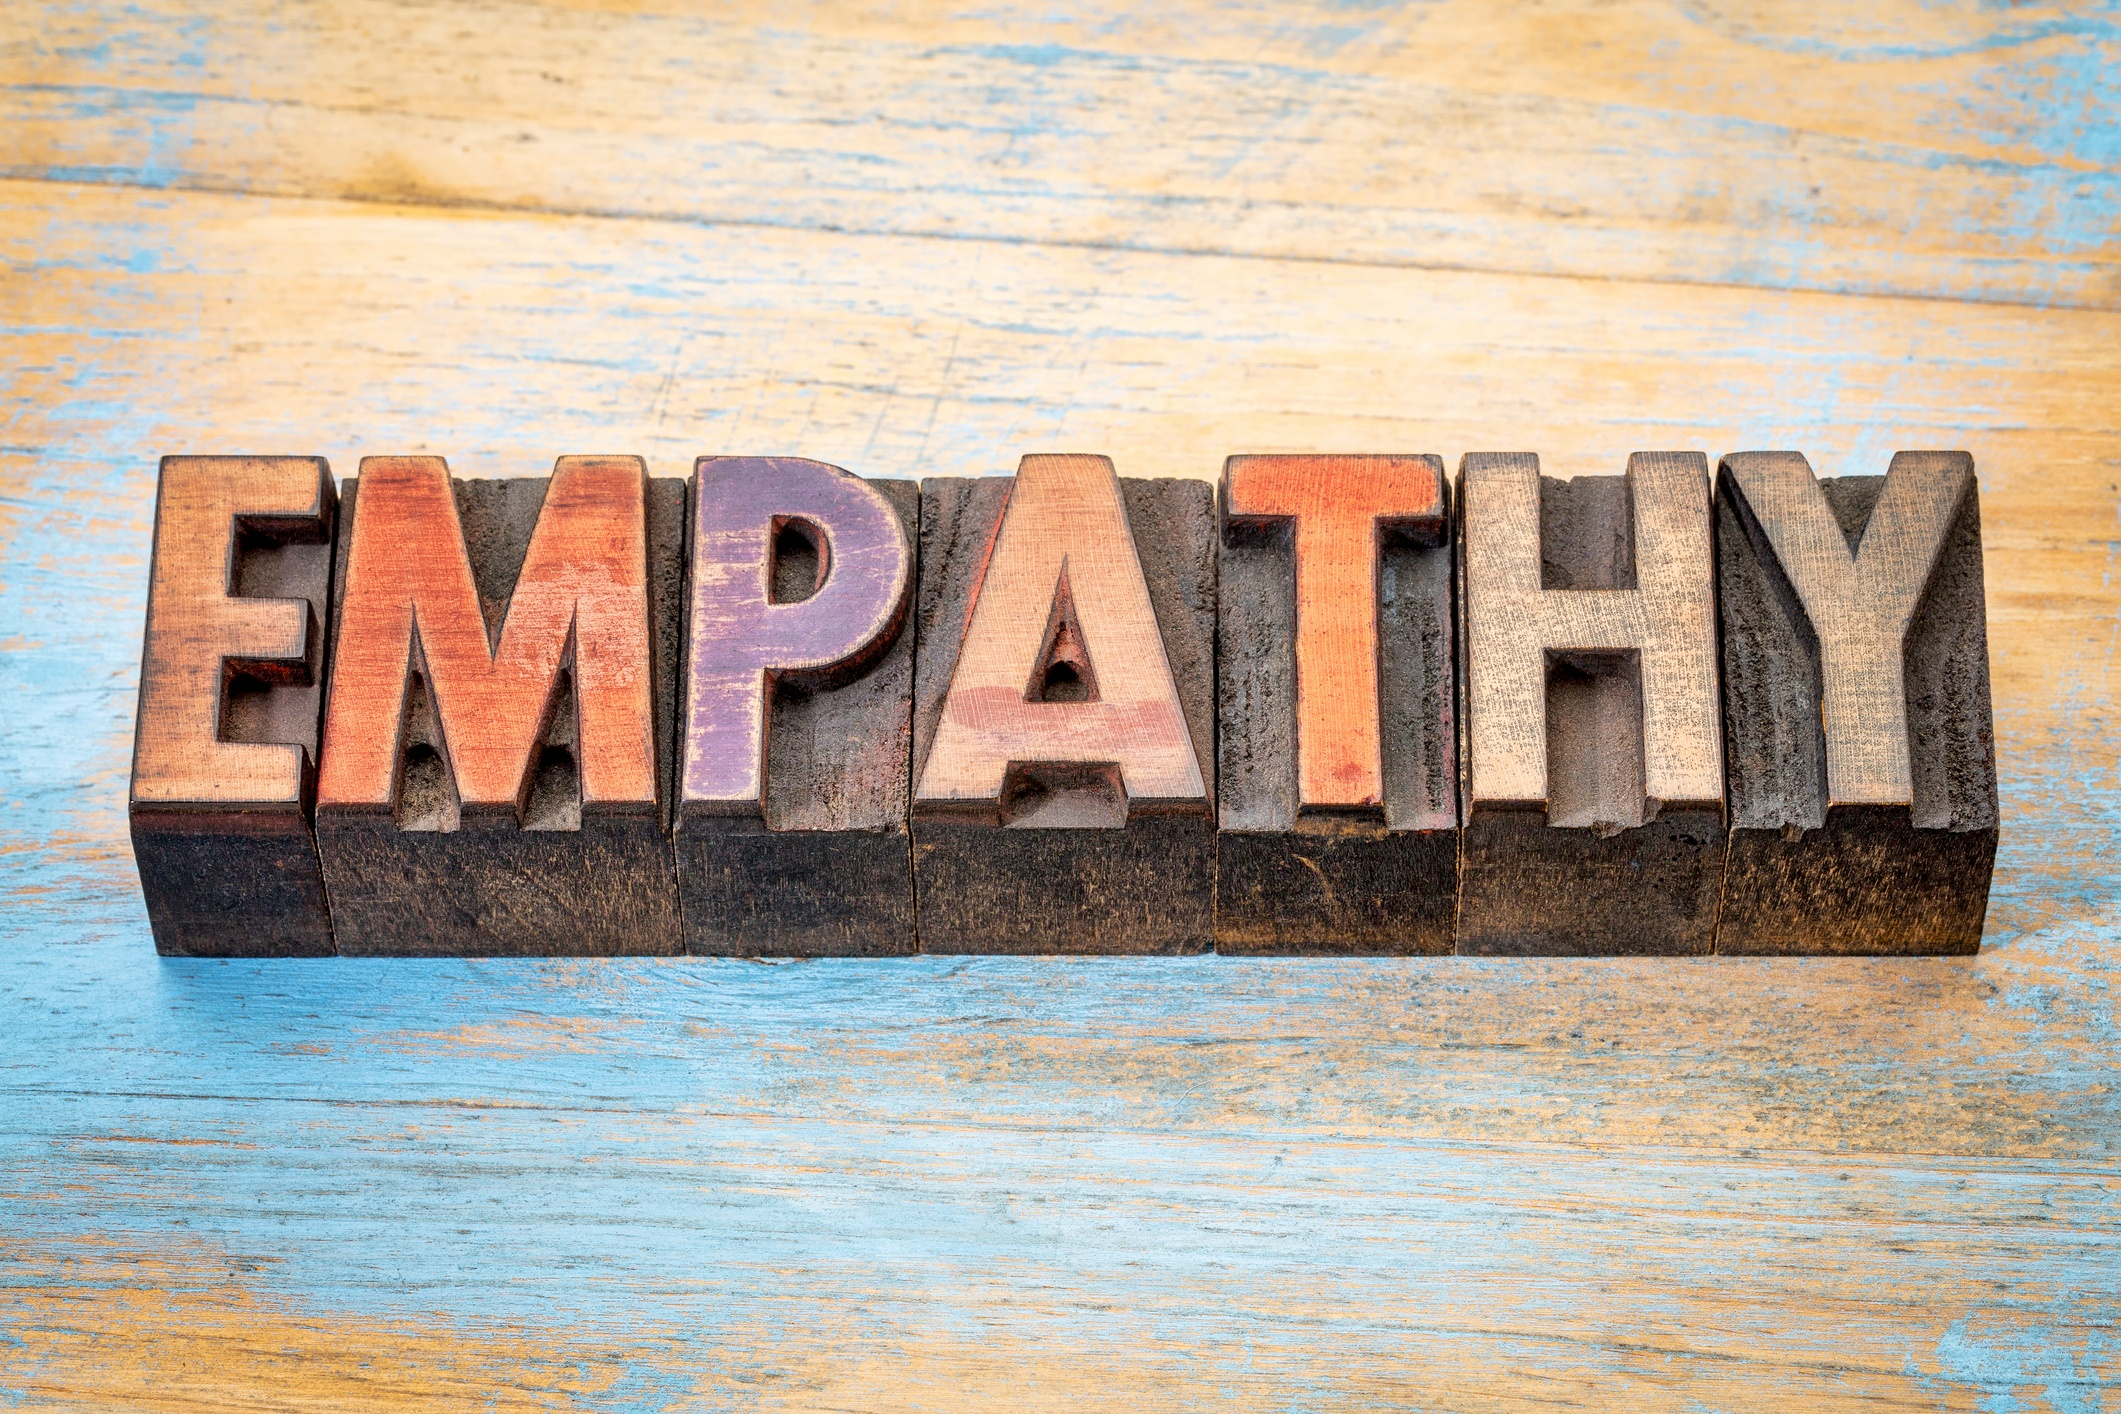 Three kinds of empathy are defined: emotional, cognitive, compassionate